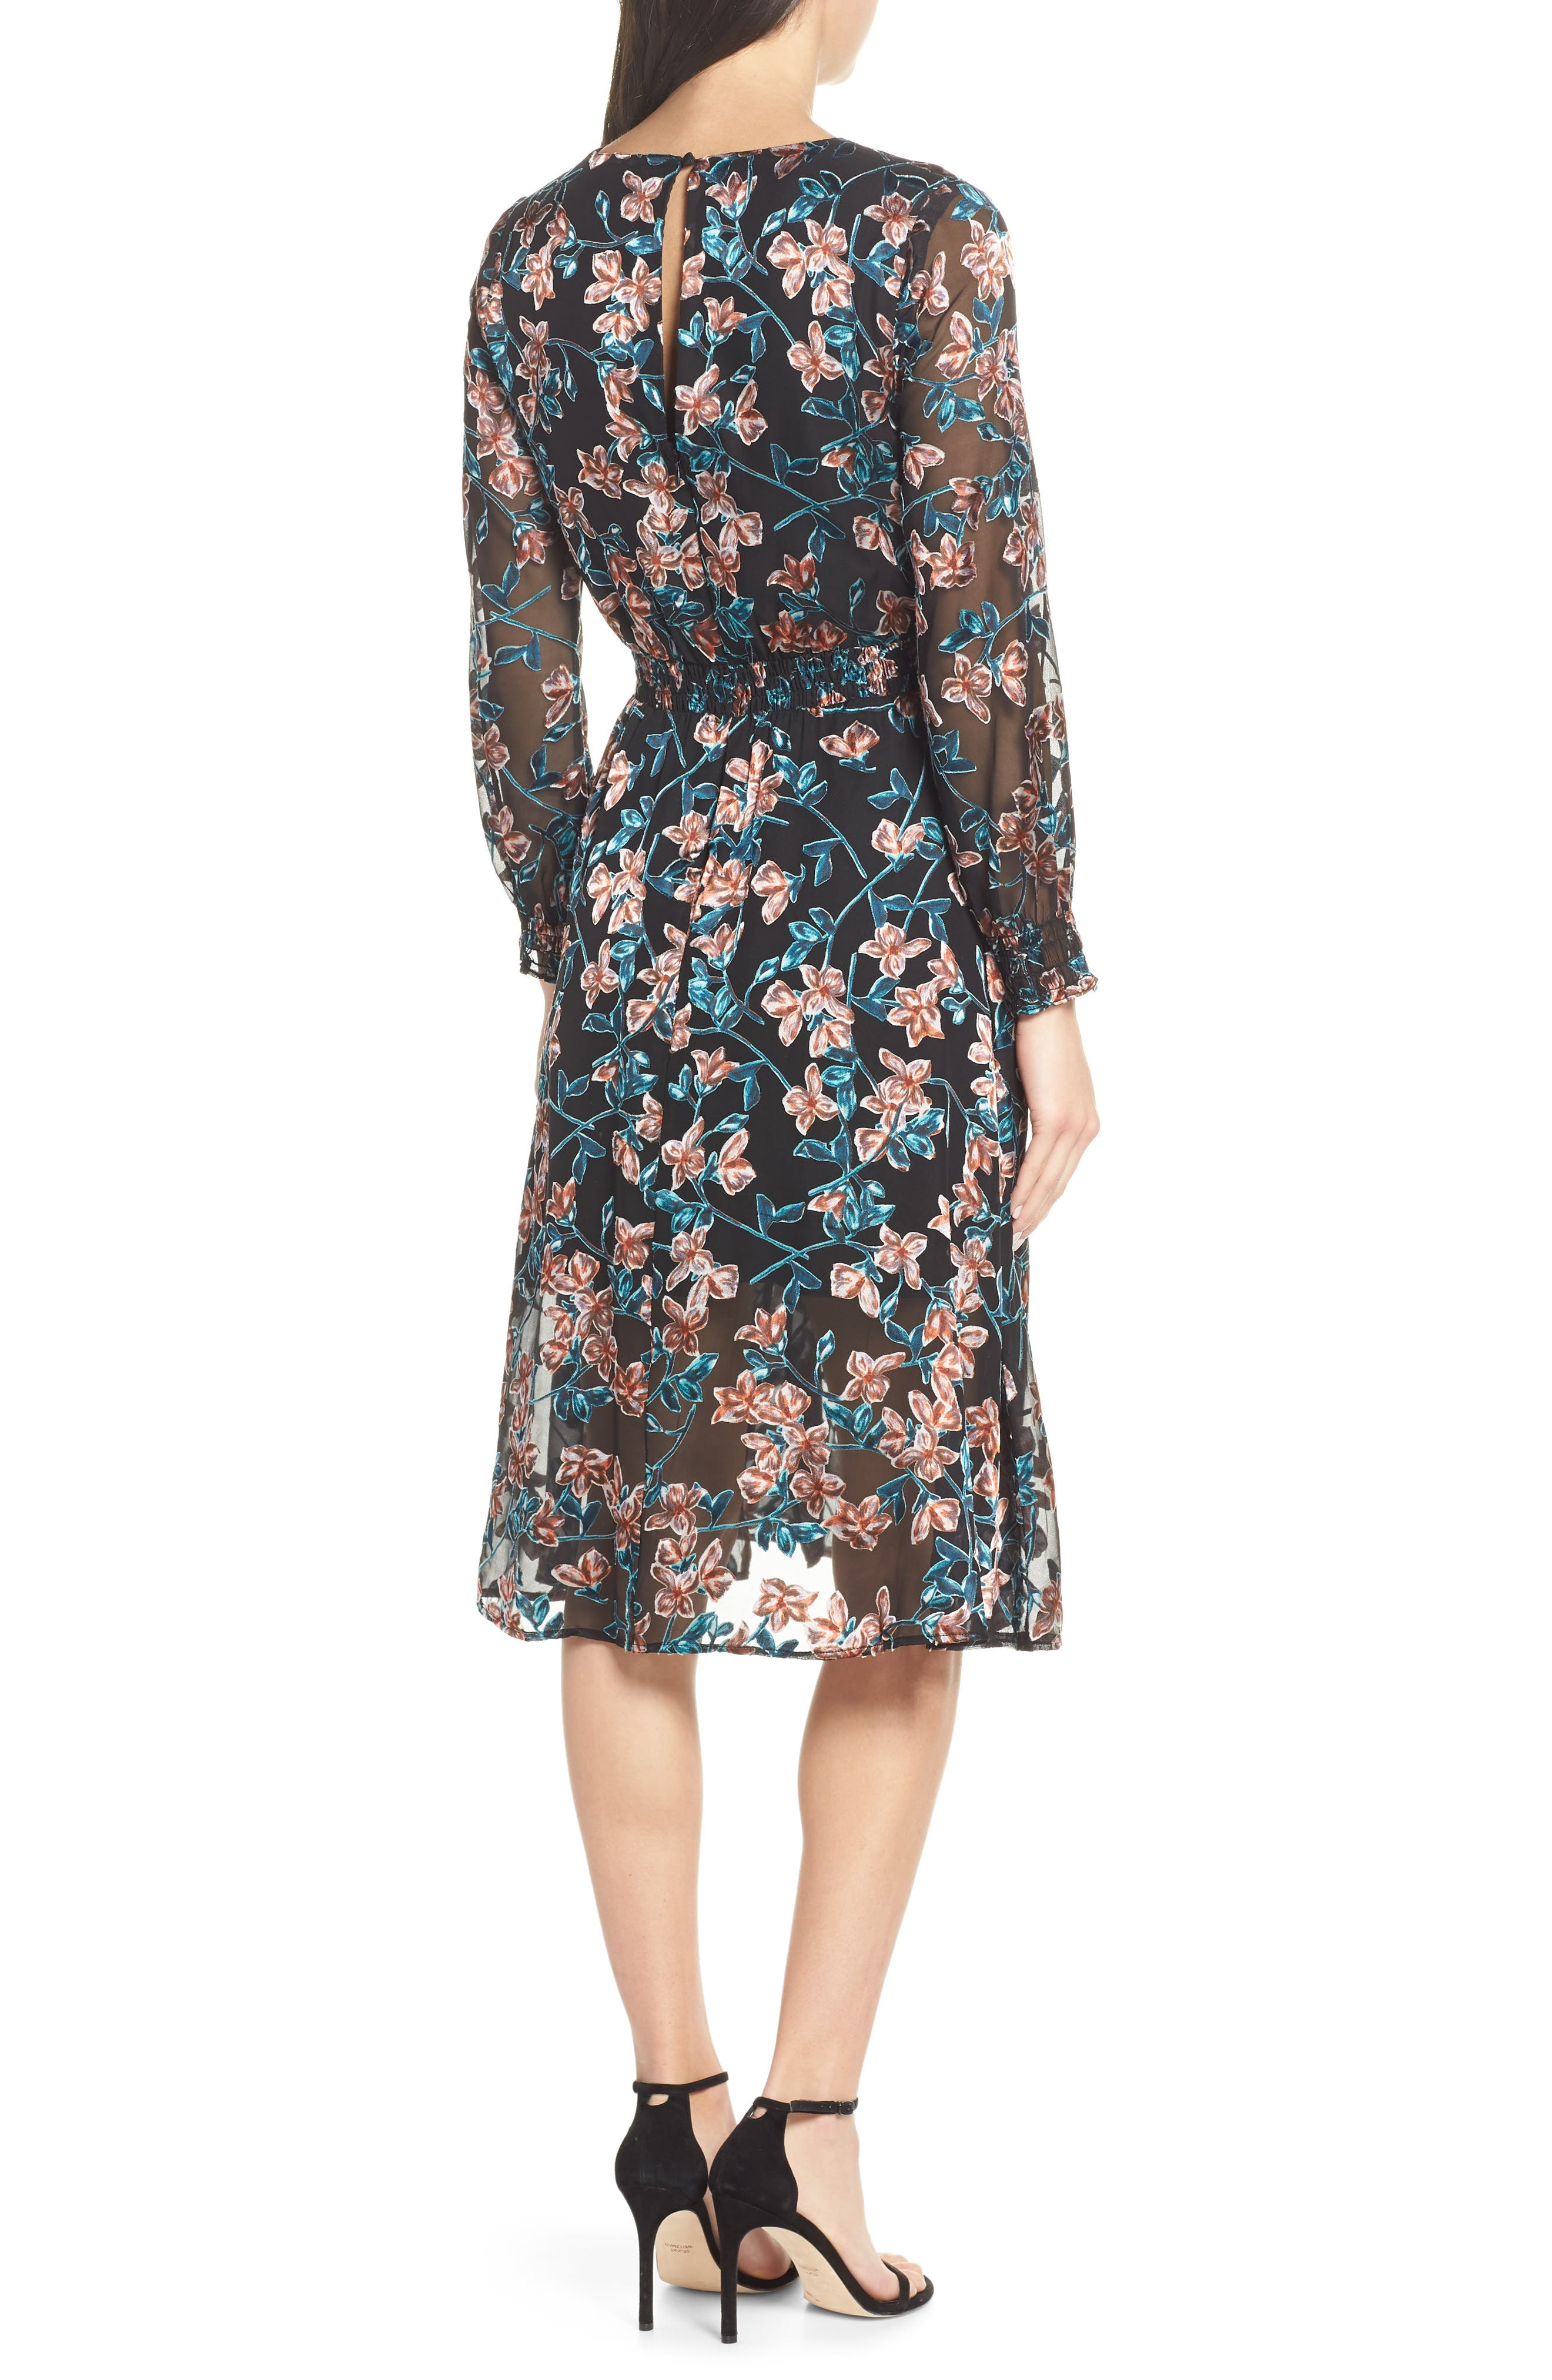 ALI & JAY, Treat Me Like a Lady Floral Dress, Alternate thumbnail 2, color, 001